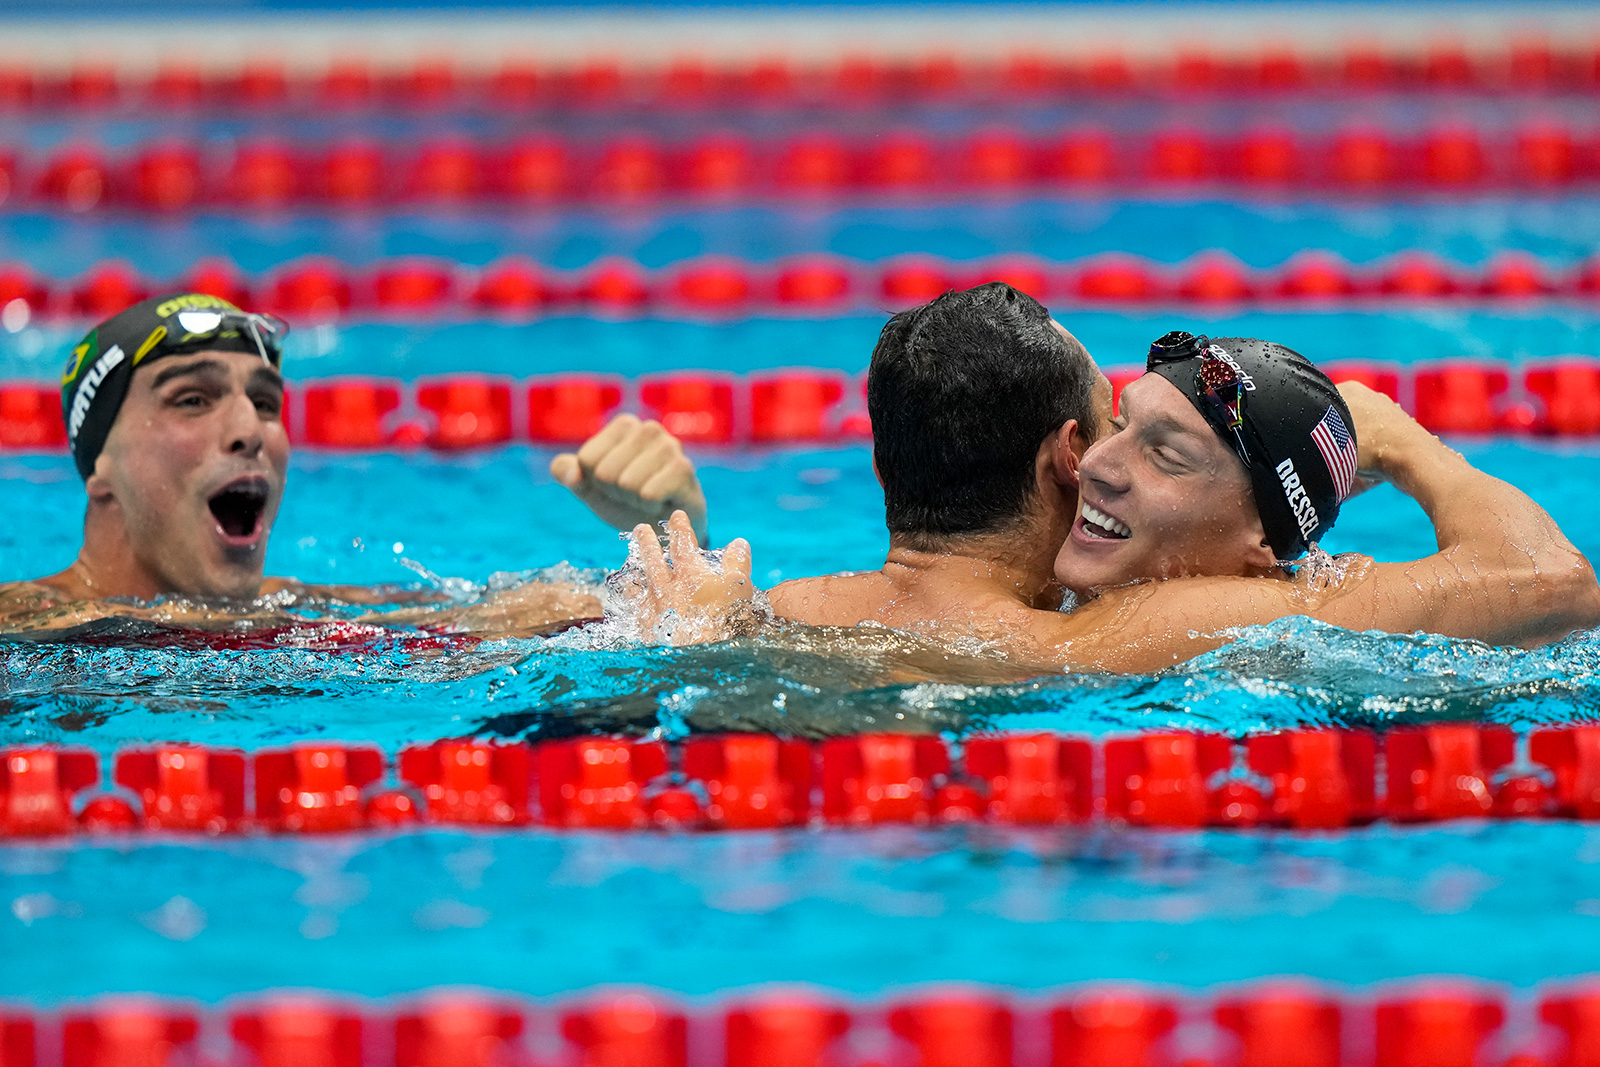 American swimmer Caeleb Dressel celebrates after winning the gold medal in a men's 50 meter freestyle on Sunday.